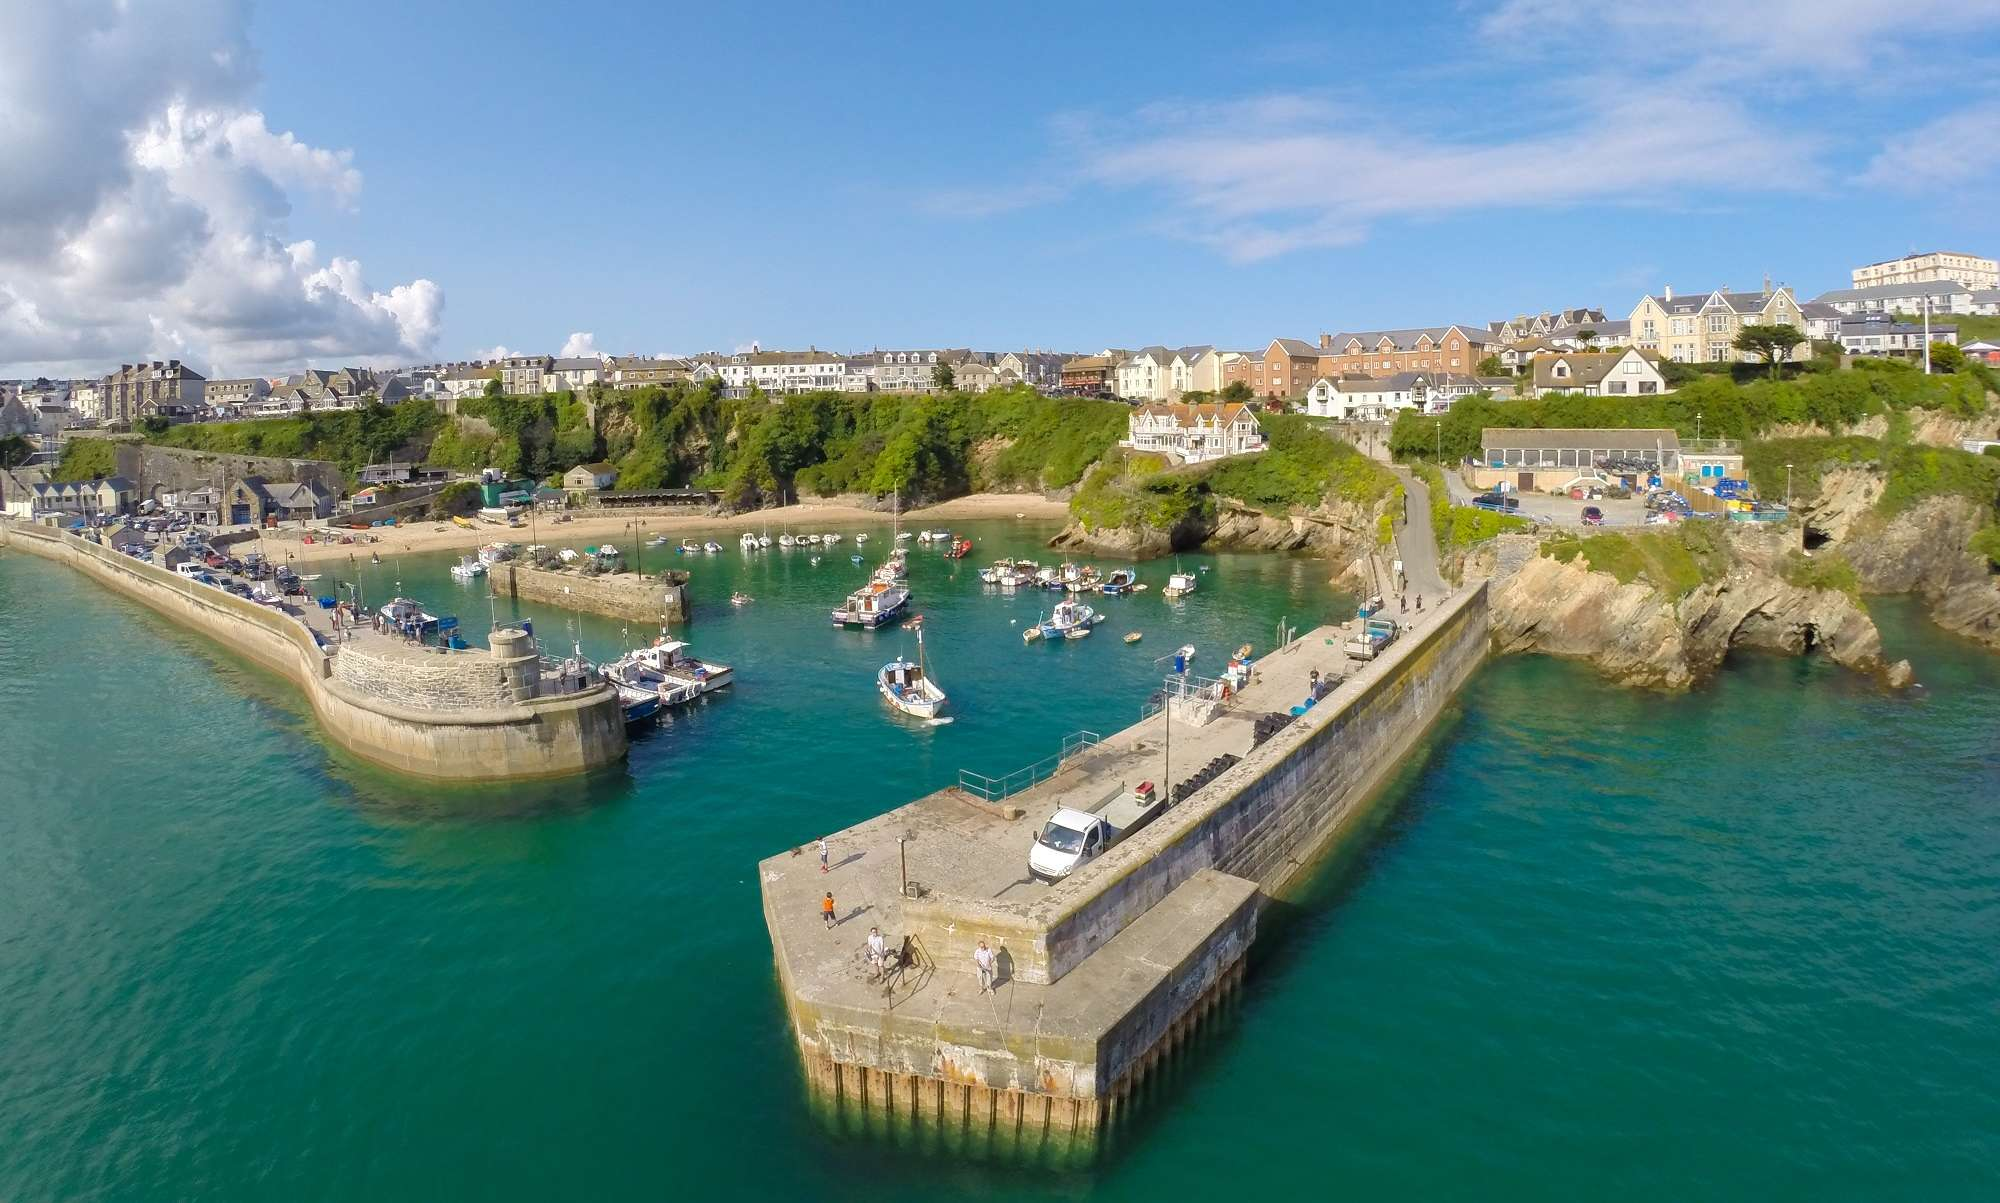 Places to visit in Cornwall - Newquay Harbour